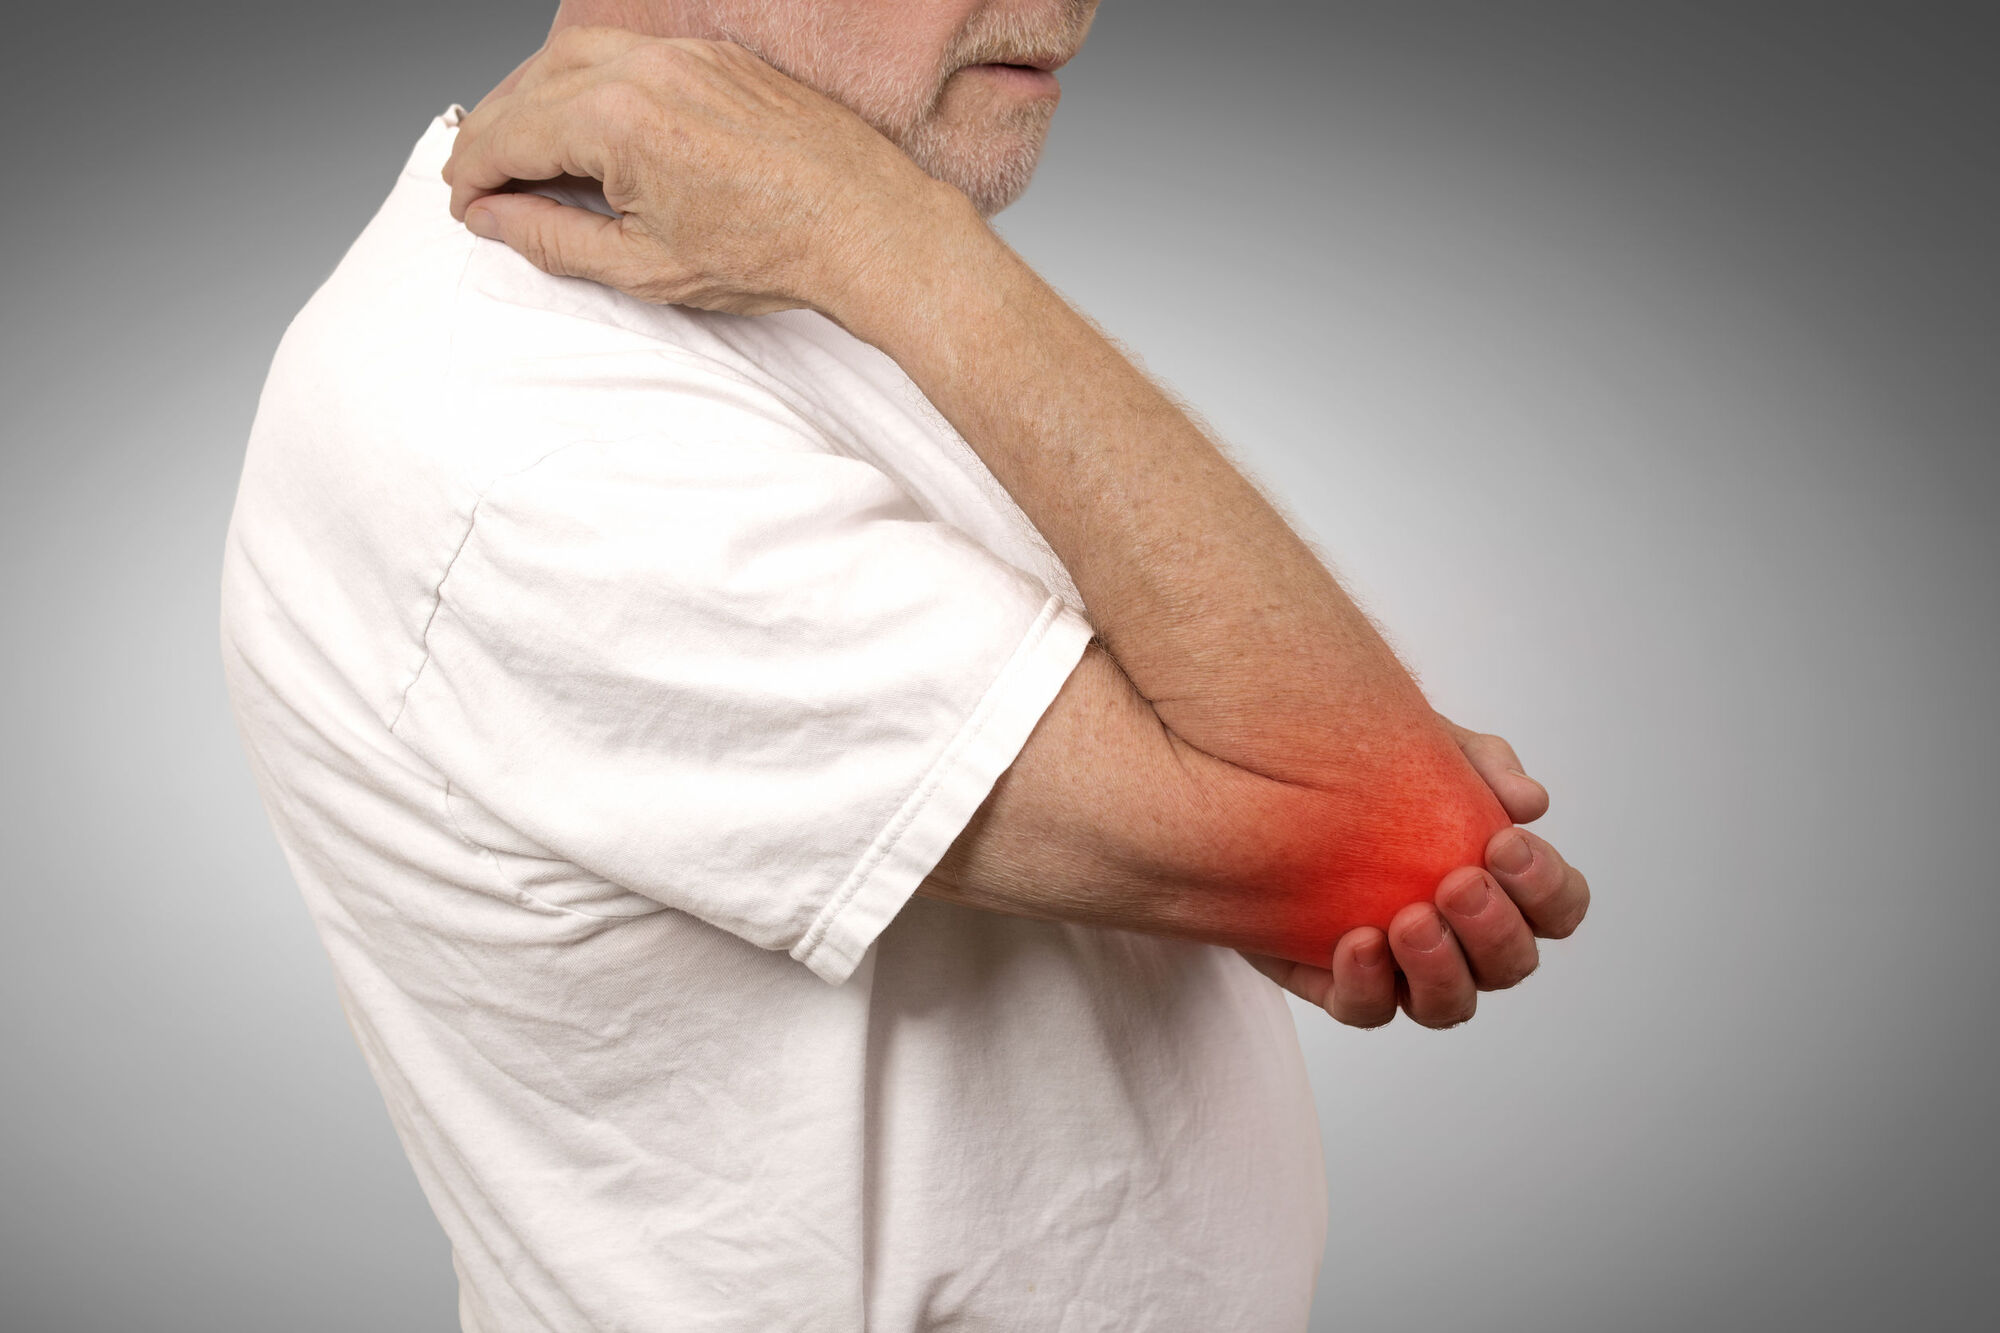 Why Do My Joints Hurt?